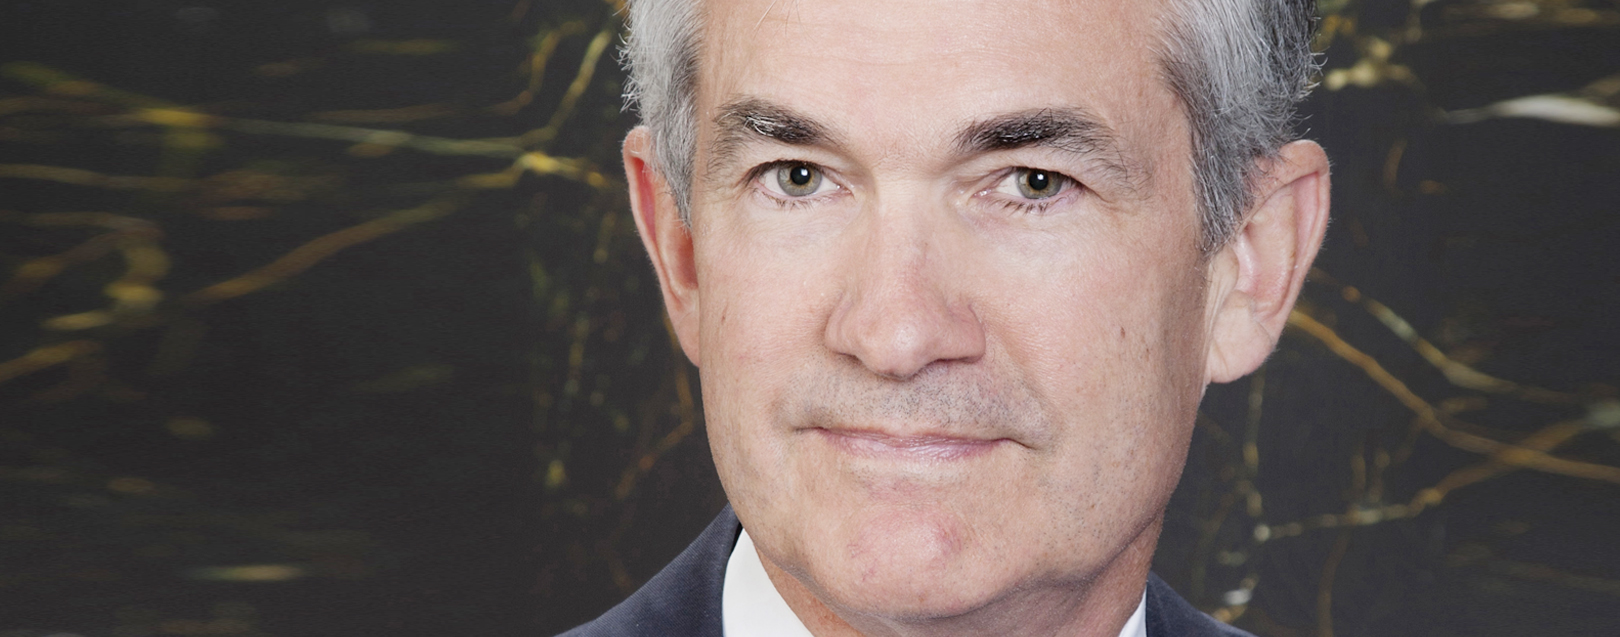 Jerome Powell to take over Janet Yellen as Fed's chairman